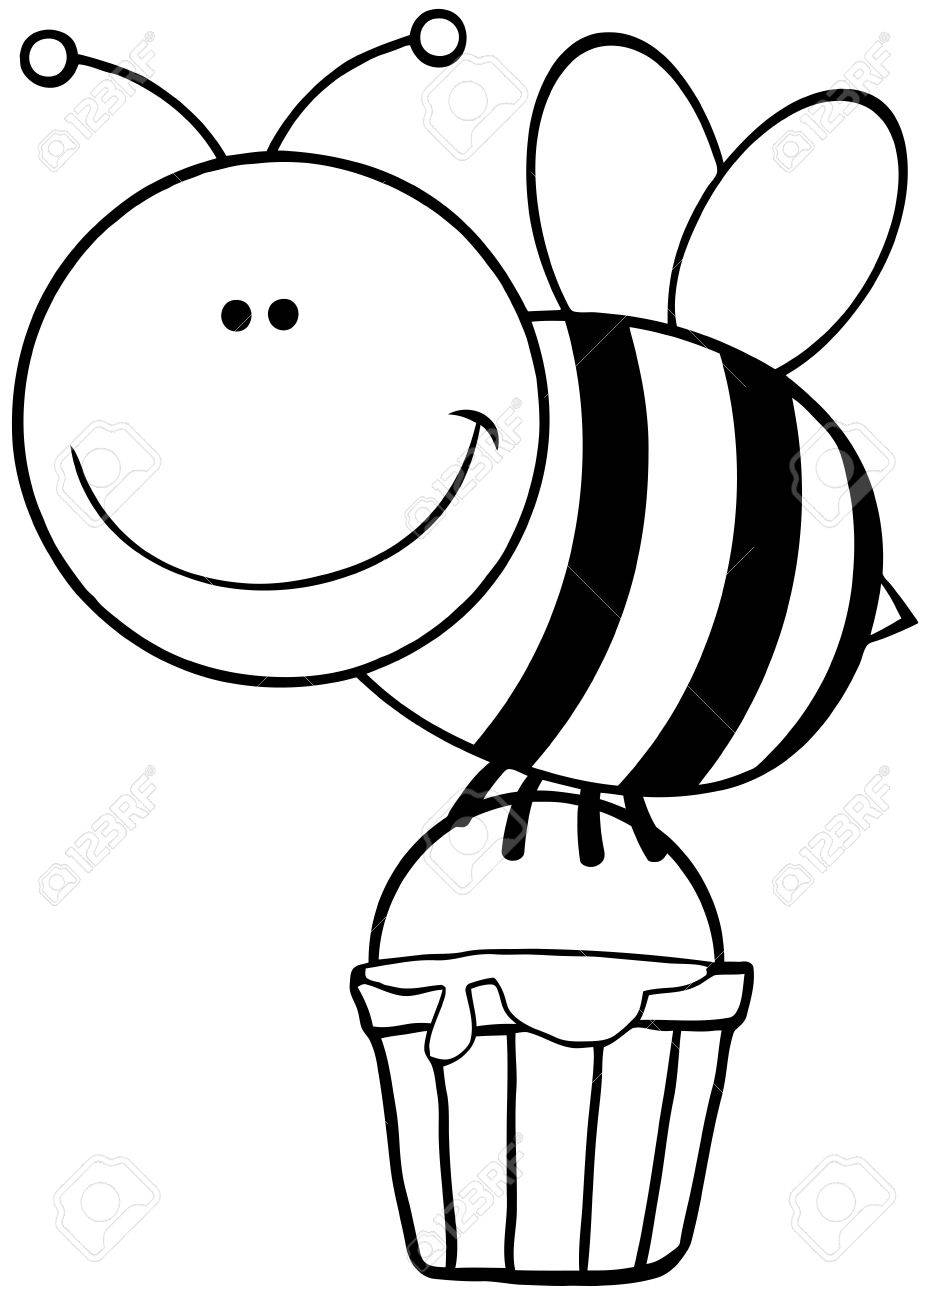 928x1300 Outlined Bee Flying With A Honey Bucket Royalty Free Cliparts